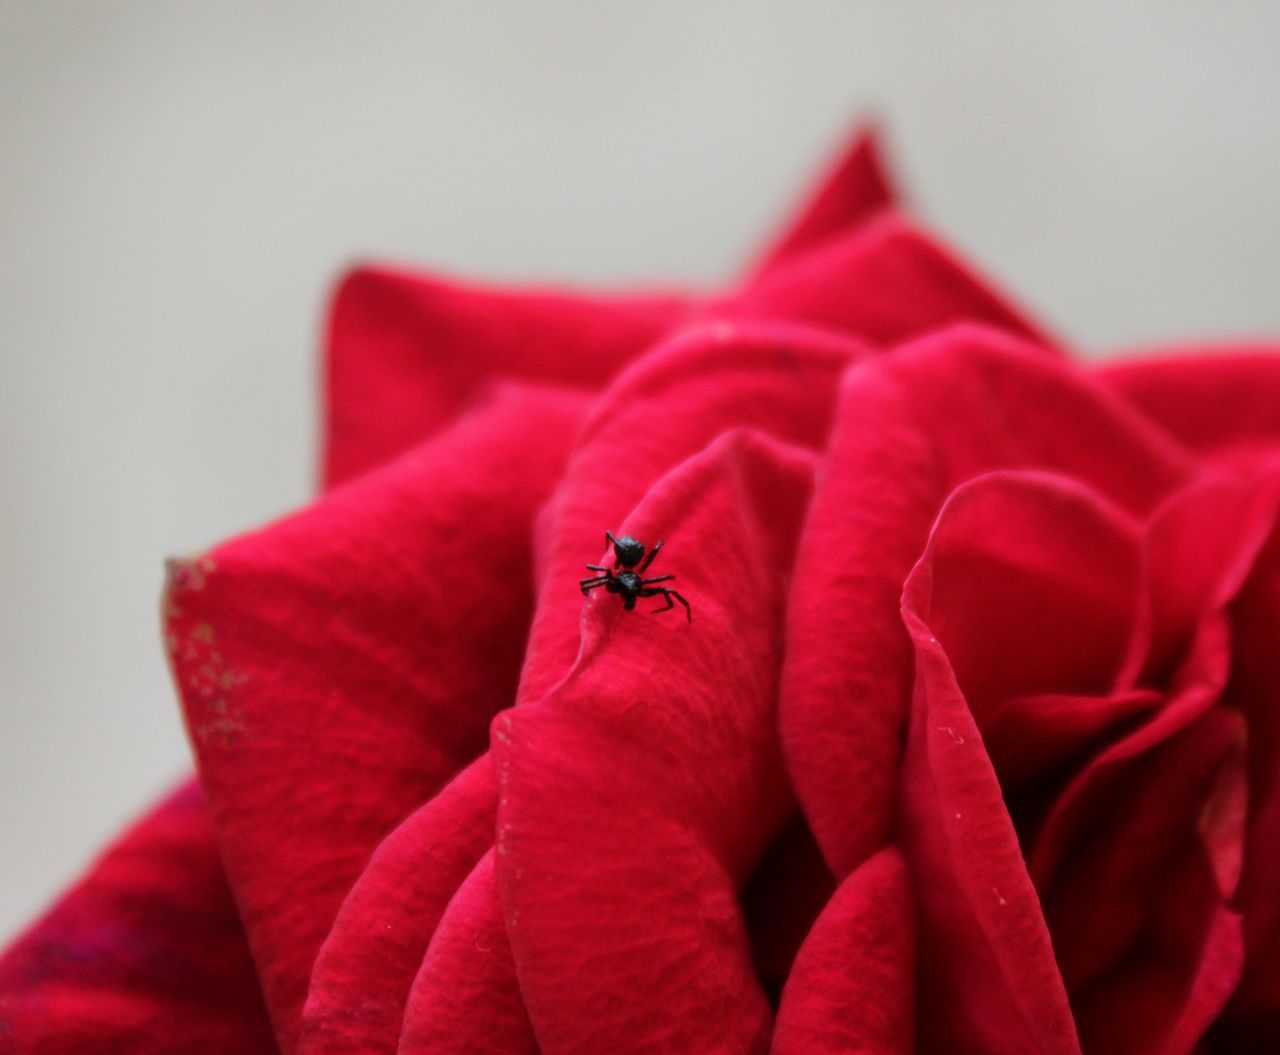 Red Insect One Animal Animals In The Wild Close-up White Background Nature No People Animal Themes Redrose  Red Roses Red Flowers Botany Floral Fragrance Of Nature Beautiful Nature Beauty In Nature Gardening Plant Plants And Flowers Life In Color